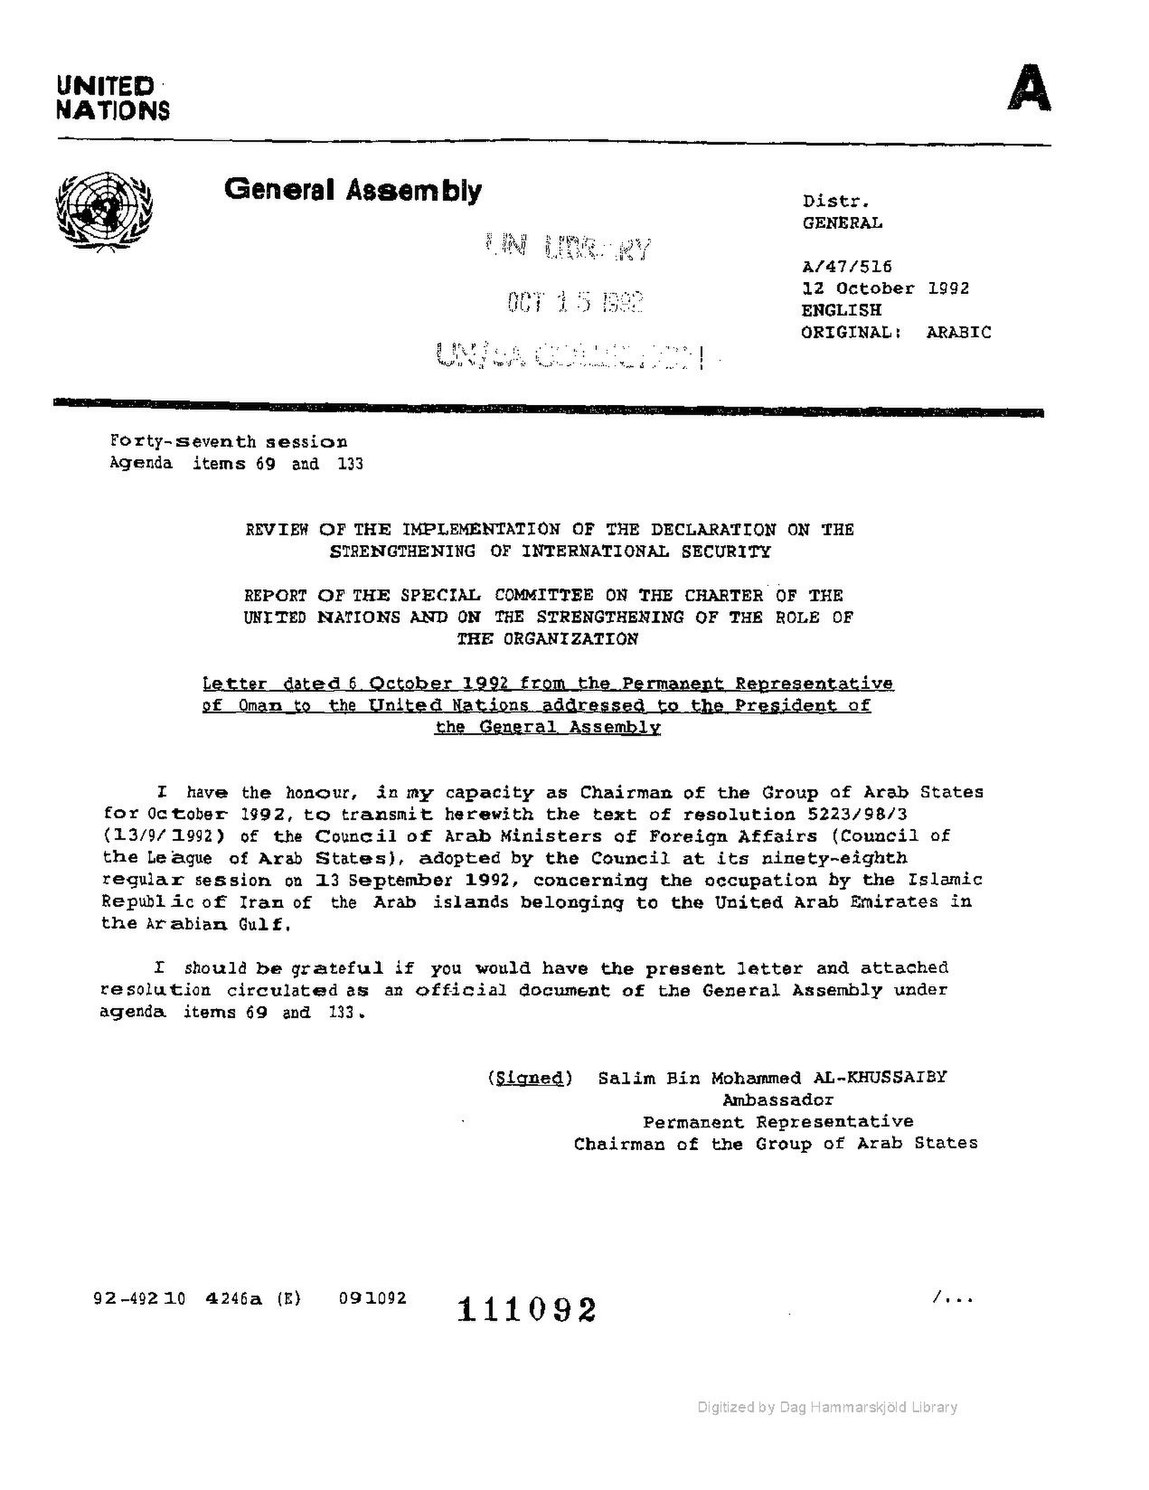 FileUN DOC A 47 516 Letter Dated 1992 October 6 From The Permanent Representative Of Oman To United Nations Addressed President General